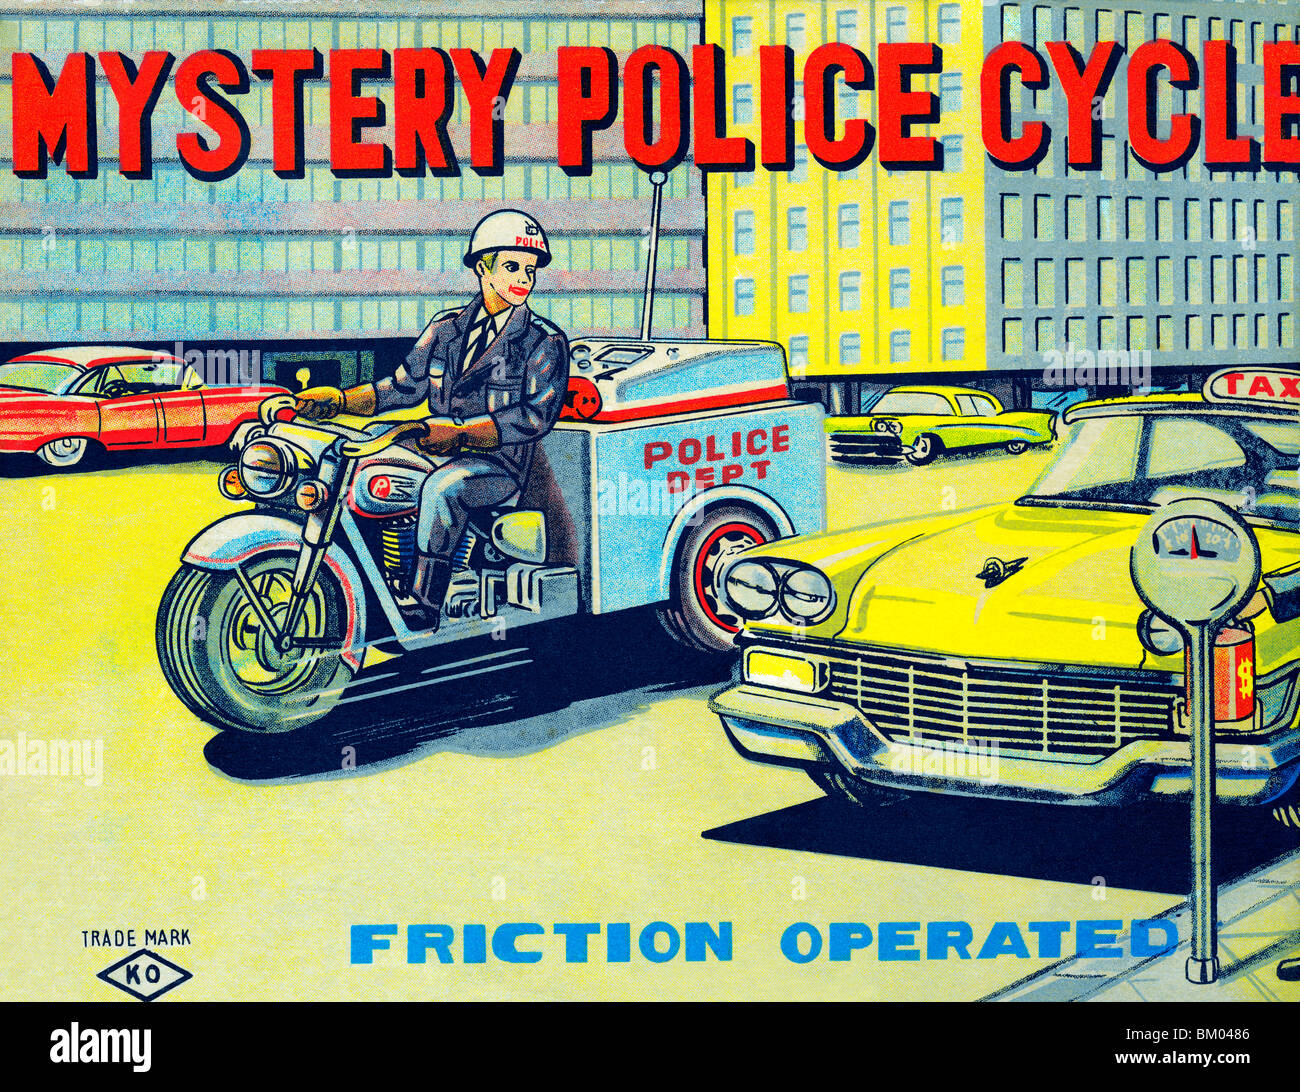 Mystery Police Cycle - Stock Image